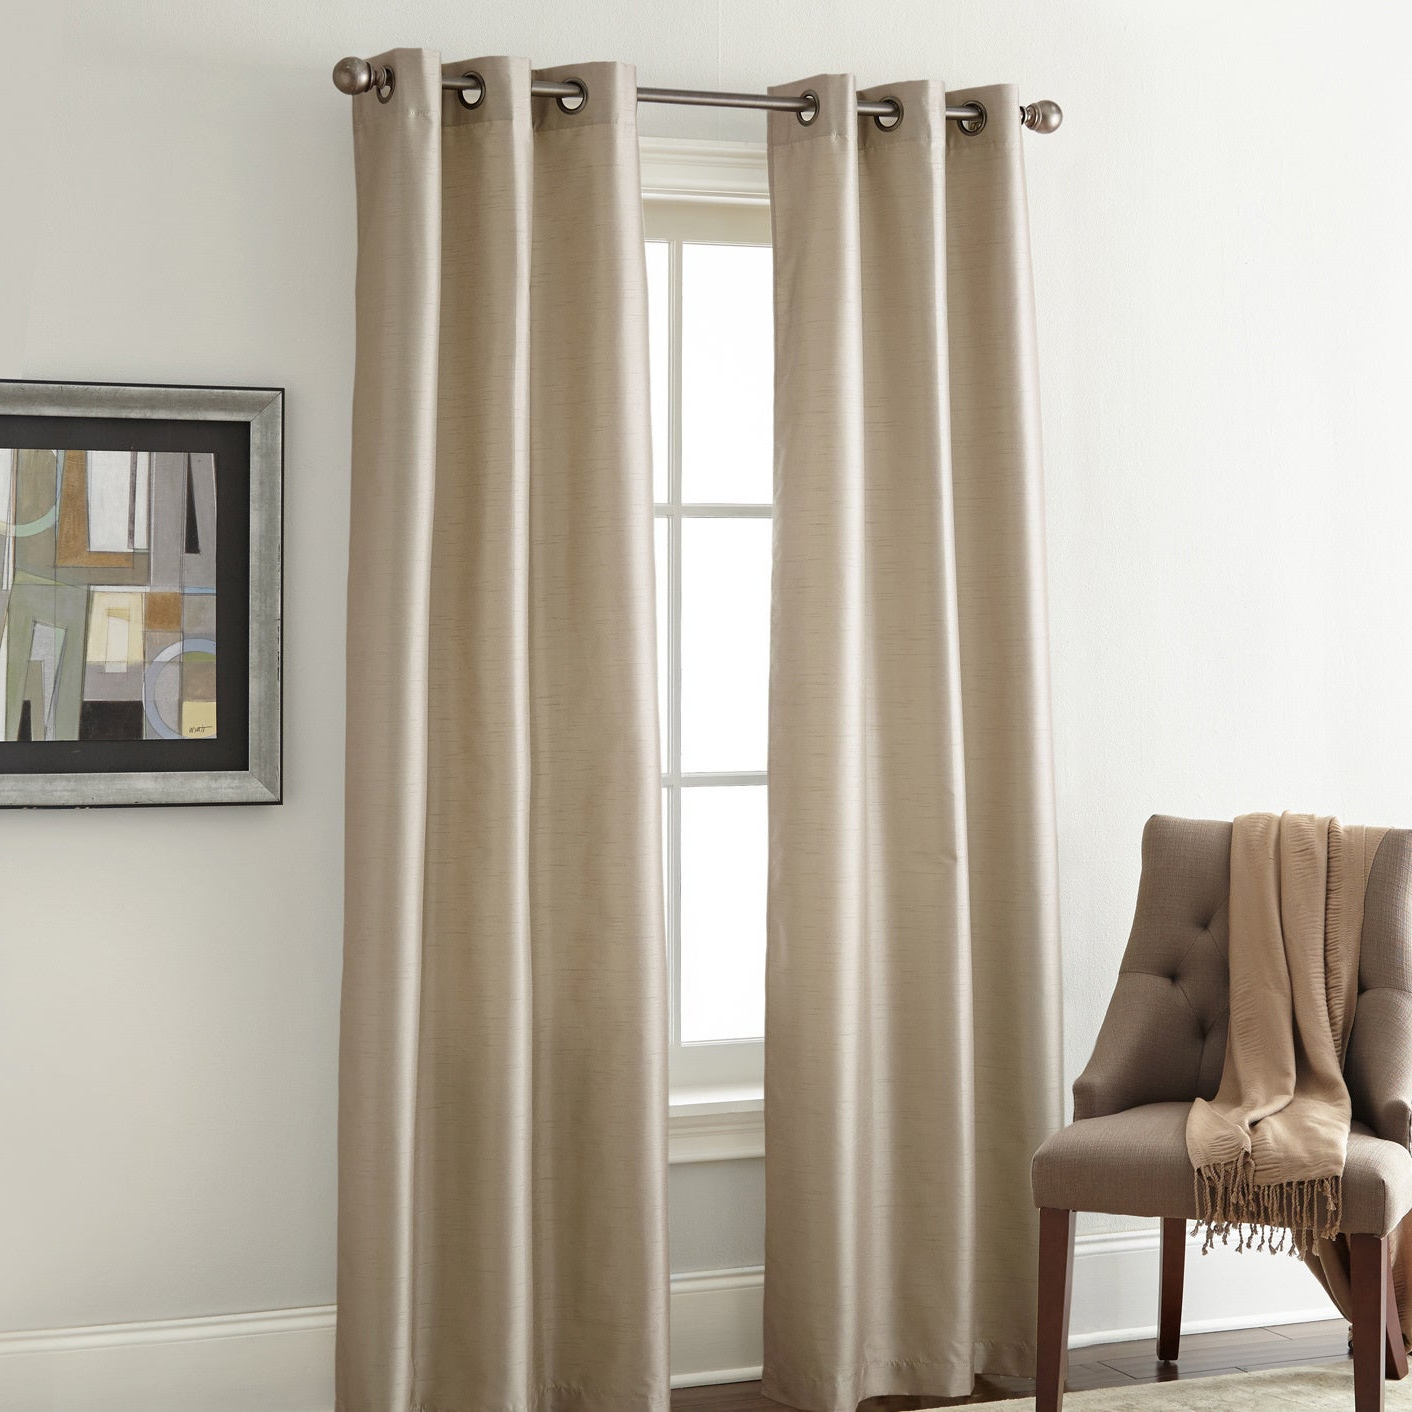 Most Popular Overseas Faux Silk Blackout Curtain Panel Pairs With Amrapur Overseas Faux Silk Blackout Curtain Panel Pair (View 9 of 20)